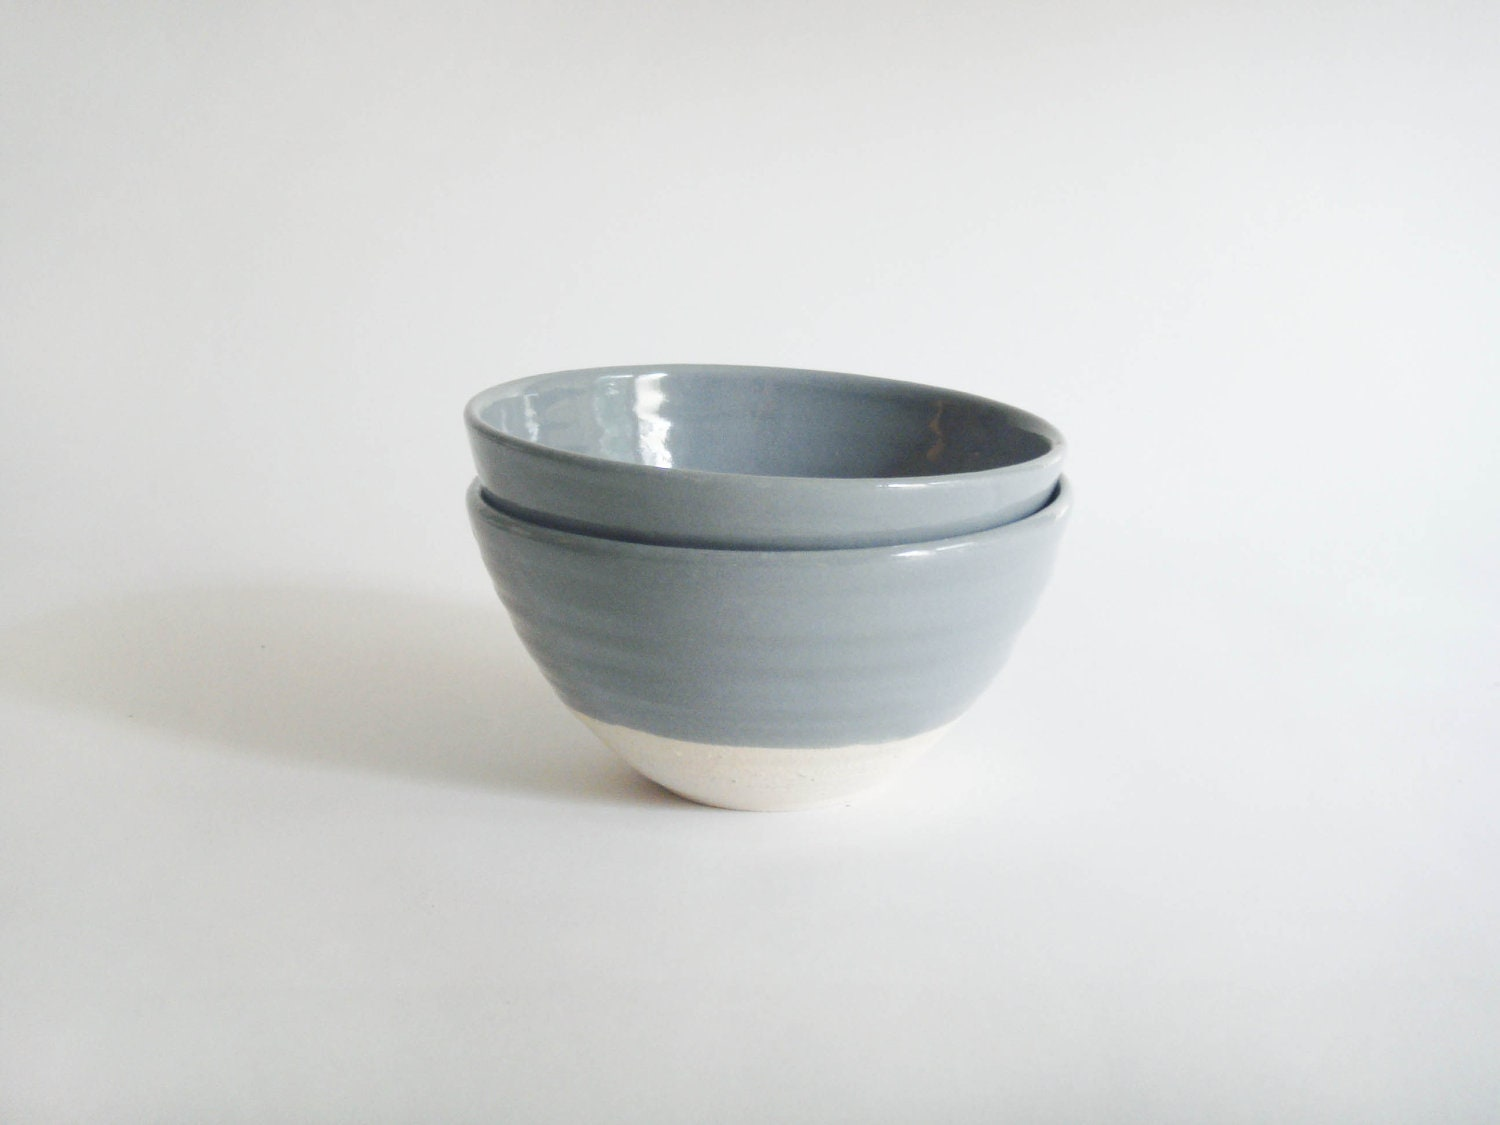 Two small grey and white pottery bowls, minimal and fresh, Forest series - juliapaulpottery